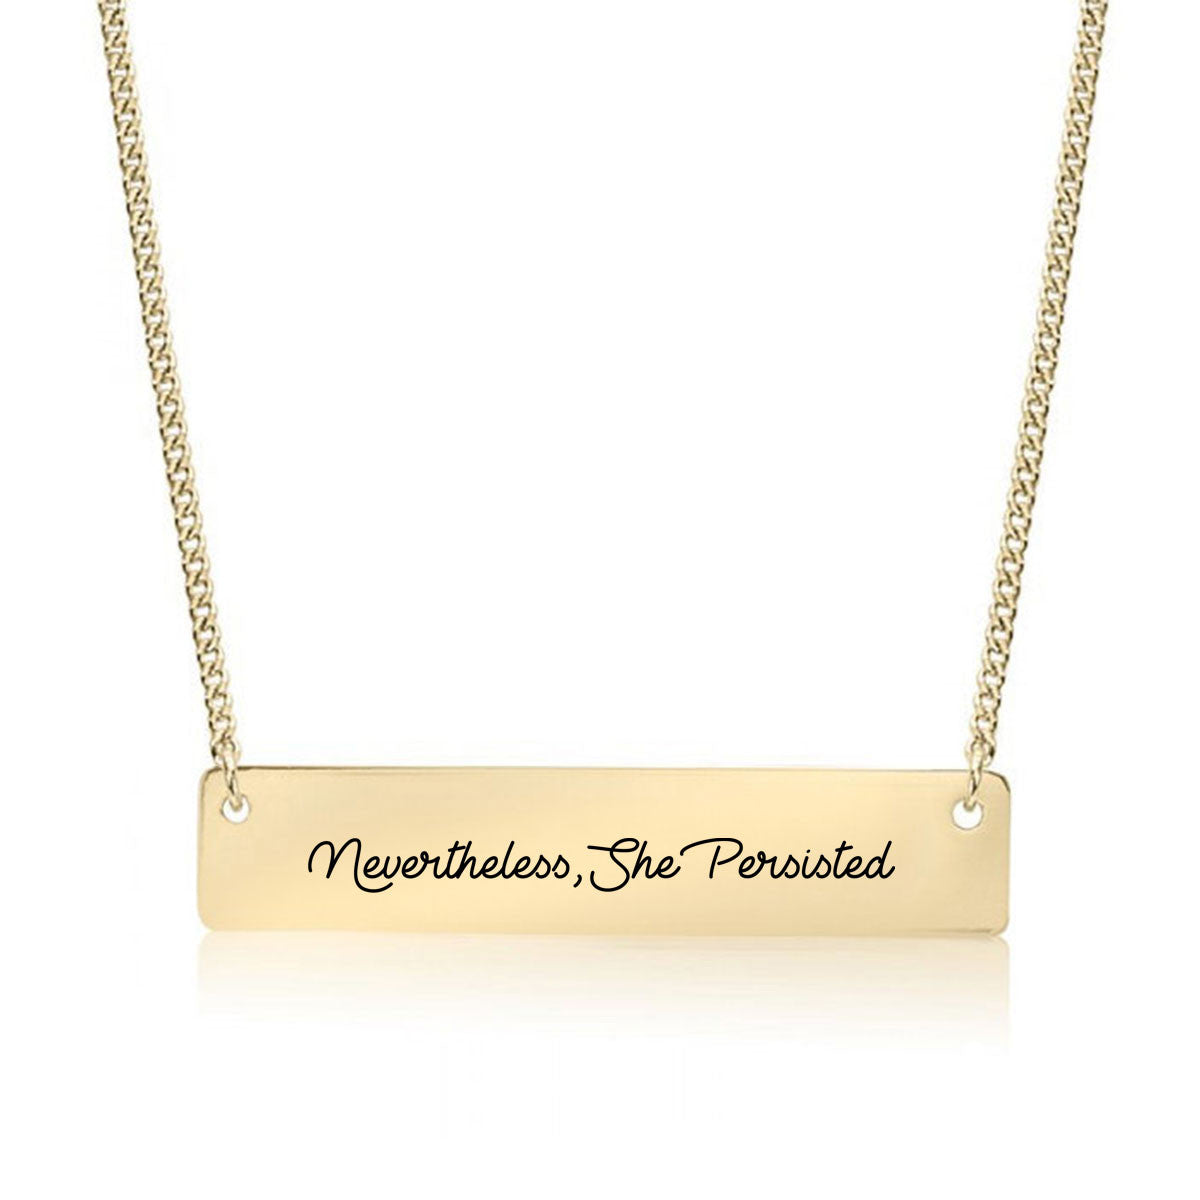 Nevertheless, She Persisted Script Gold / Silver Bar Necklace